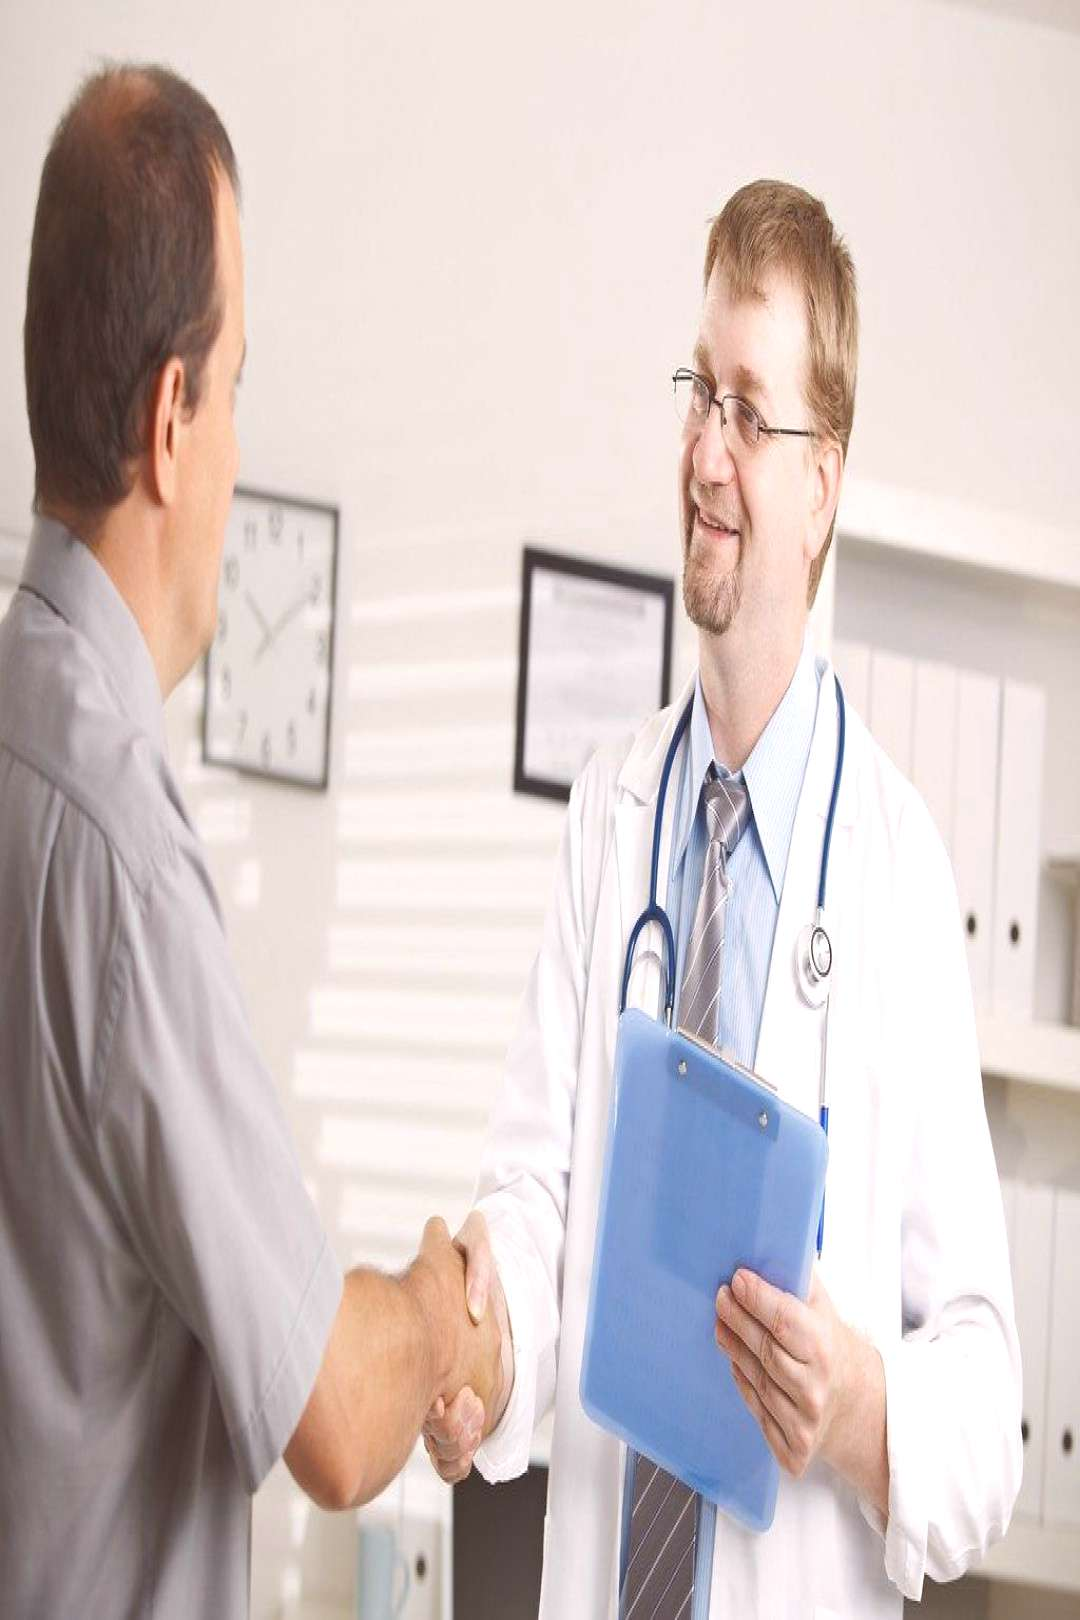 How Can Outsourced Help Your Practice? Generate More Revenue It is good to have an electronic healt